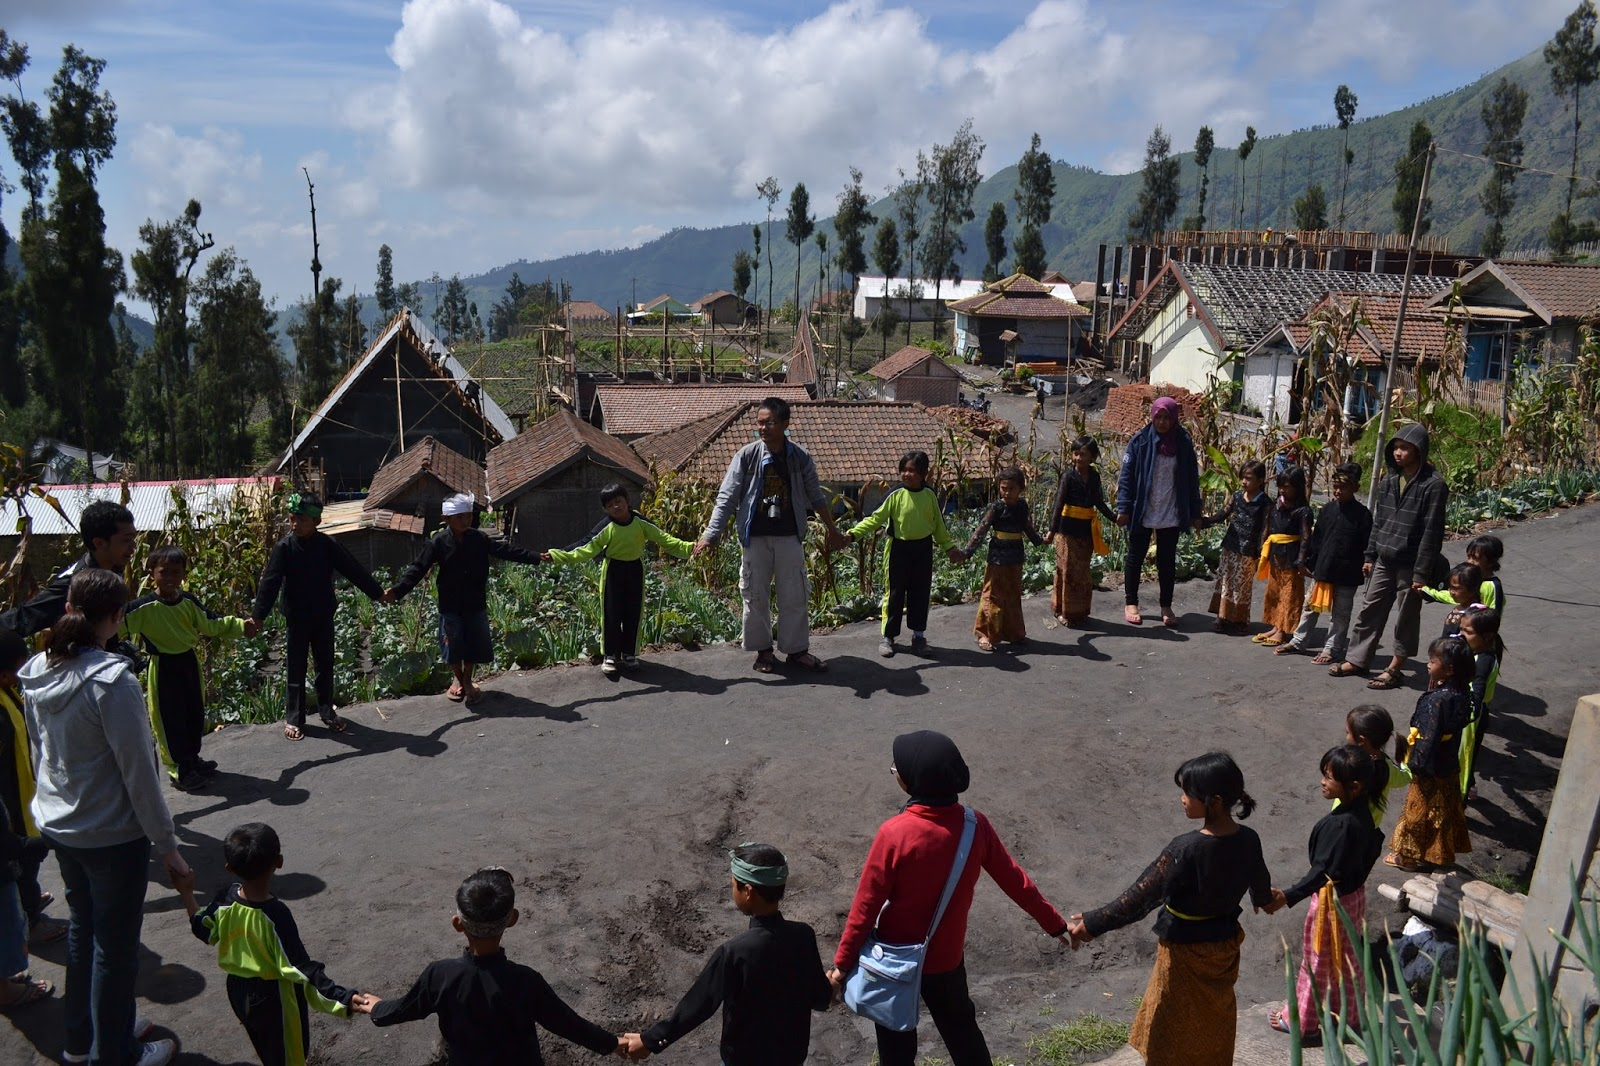 Kegiatan bersama anak-anak Ngadirejo di voluntourism Bromo Book for Mountain